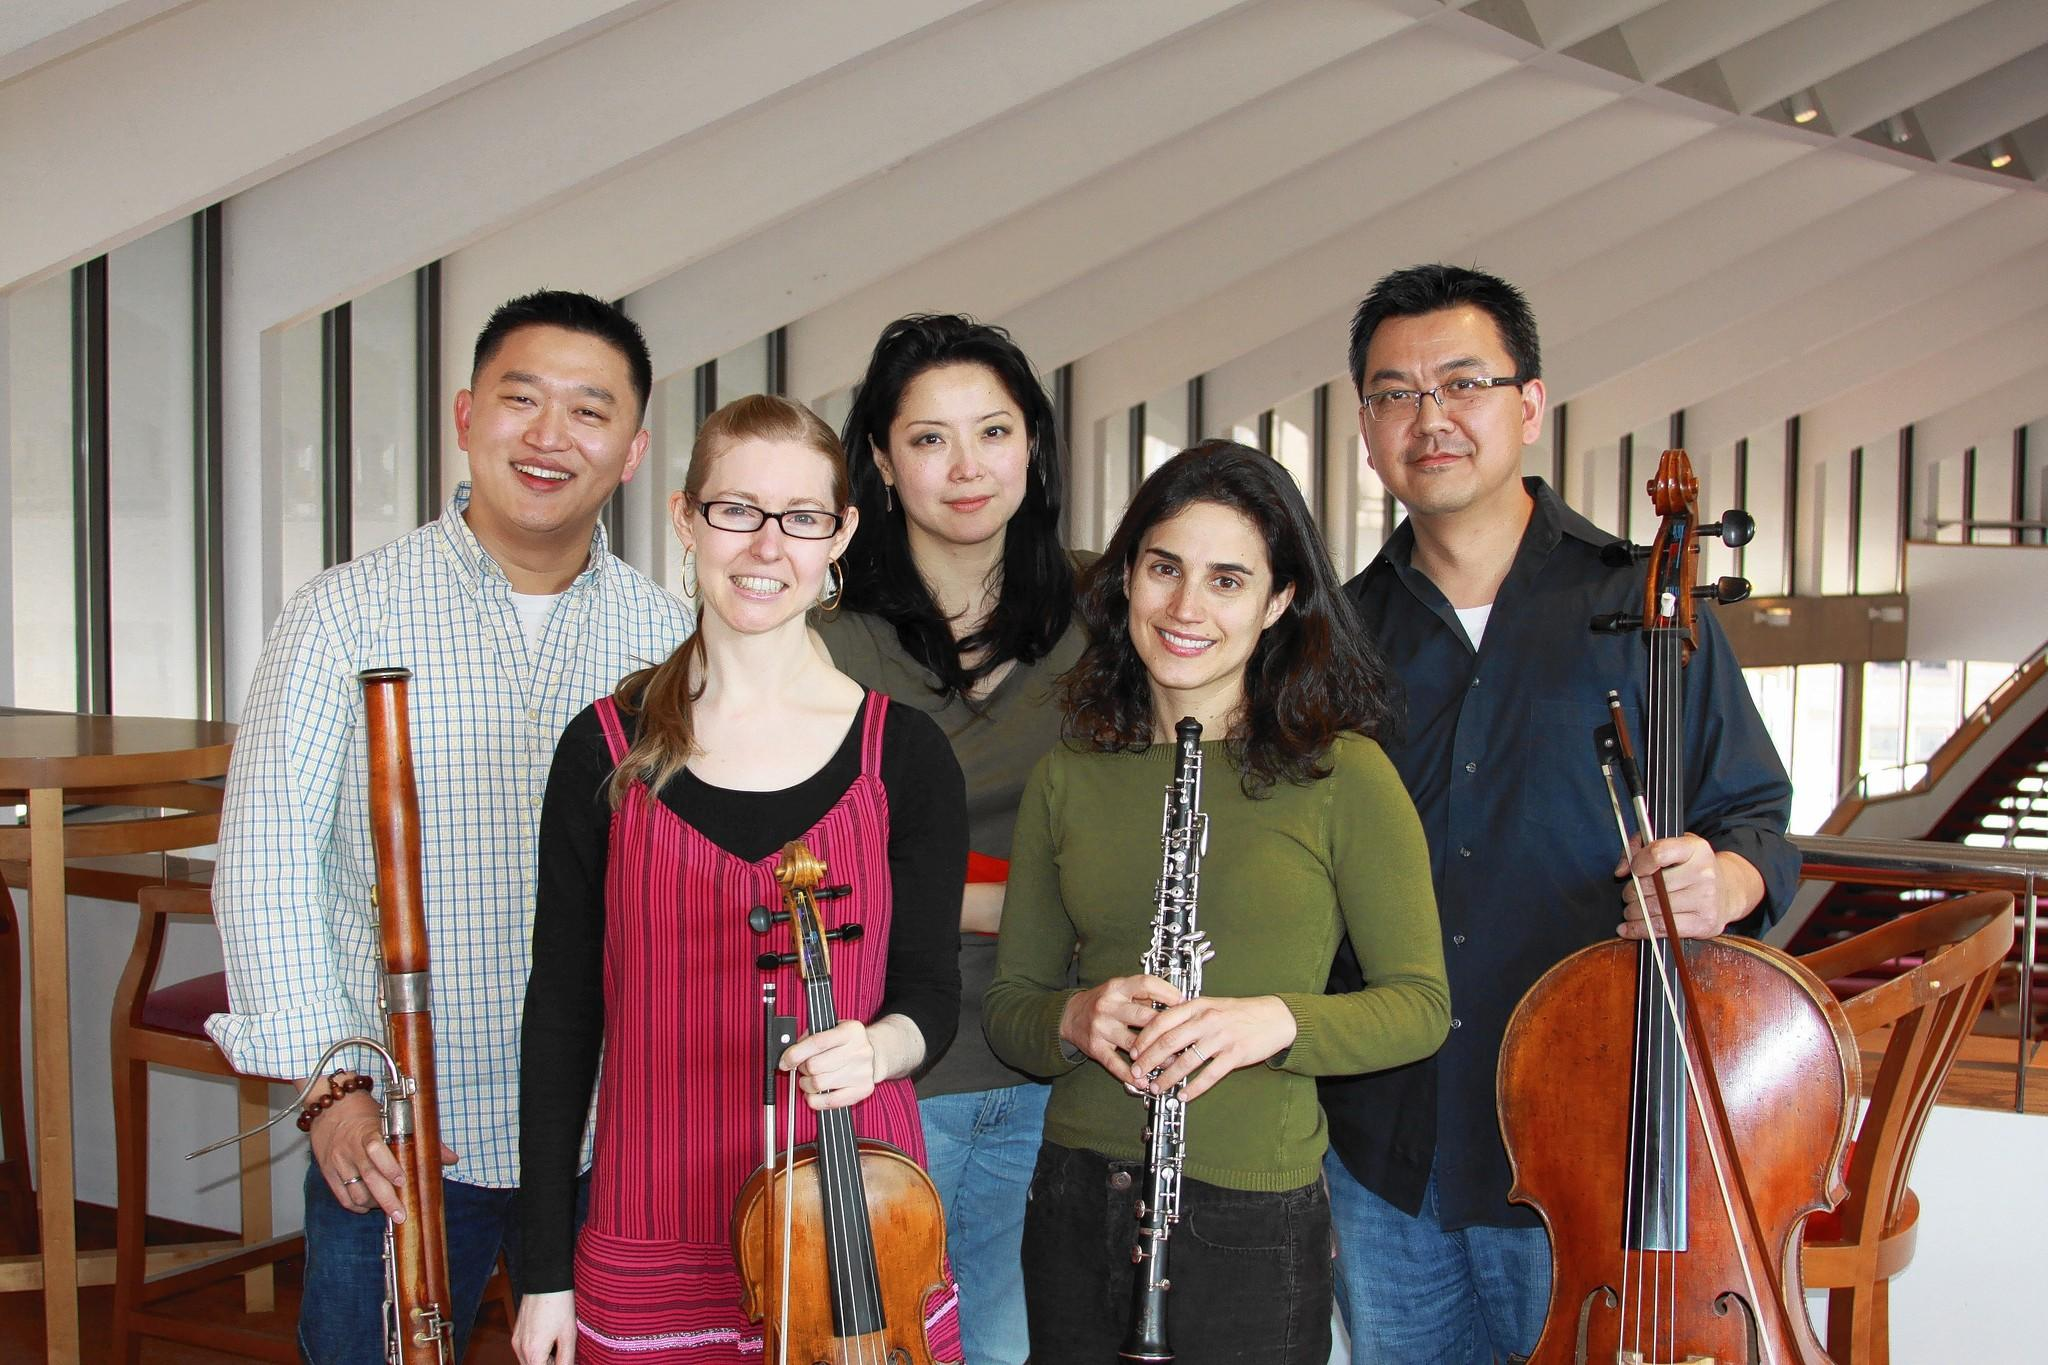 Members of the Baltimore Synmphony Orchestra performing at the upcoming Sundays at Three chamber music concert are, from left, Fei Xie,  Karin Brown, Qing Li, Katherine Needleman and Bo Li.